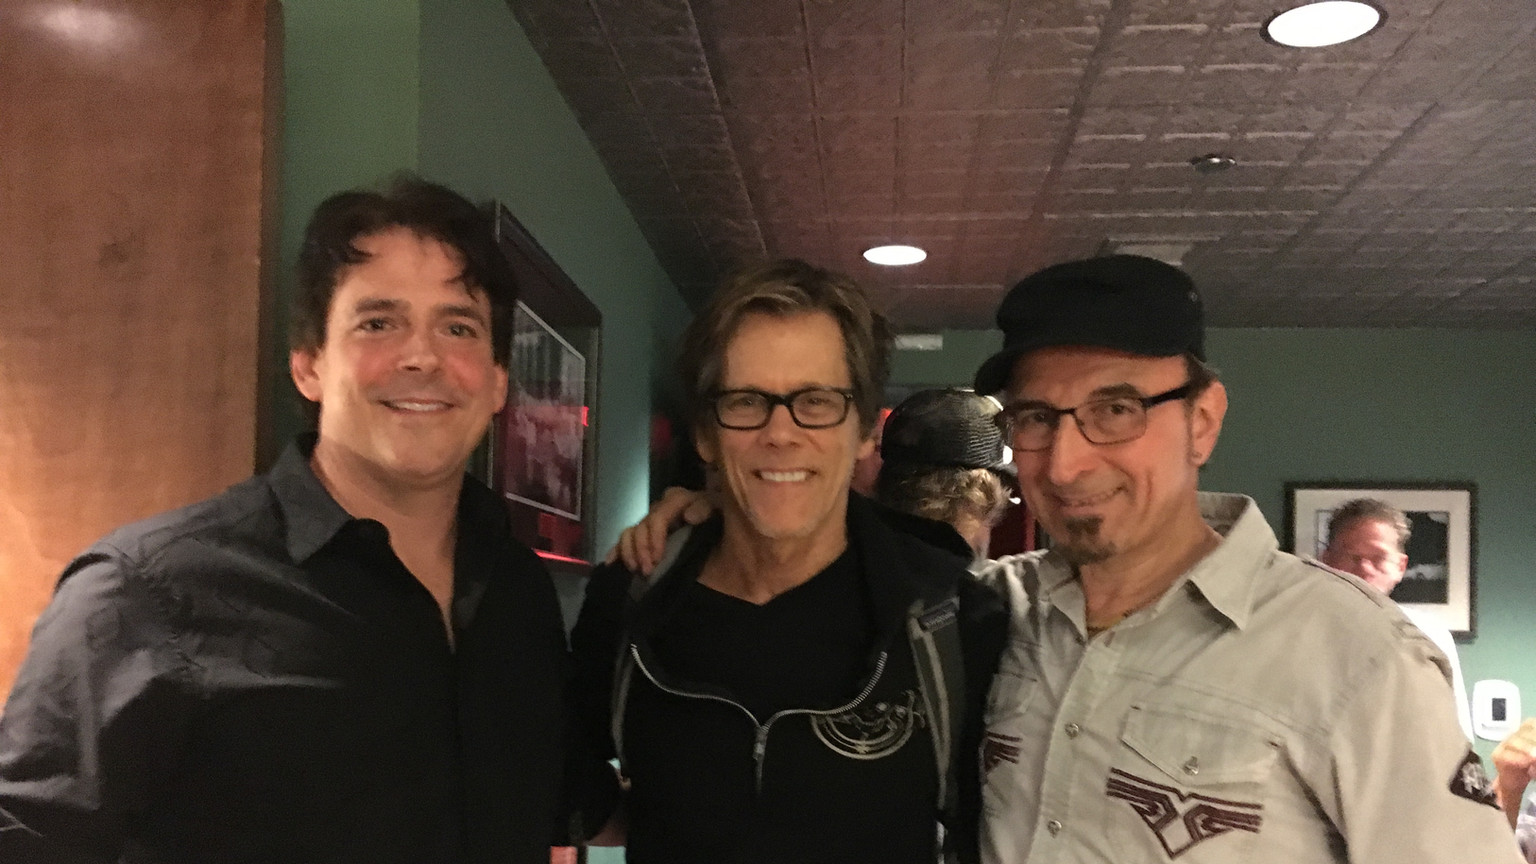 Backstage with Kevin Bacon and Paul Guzzone of The Bacon Brothers